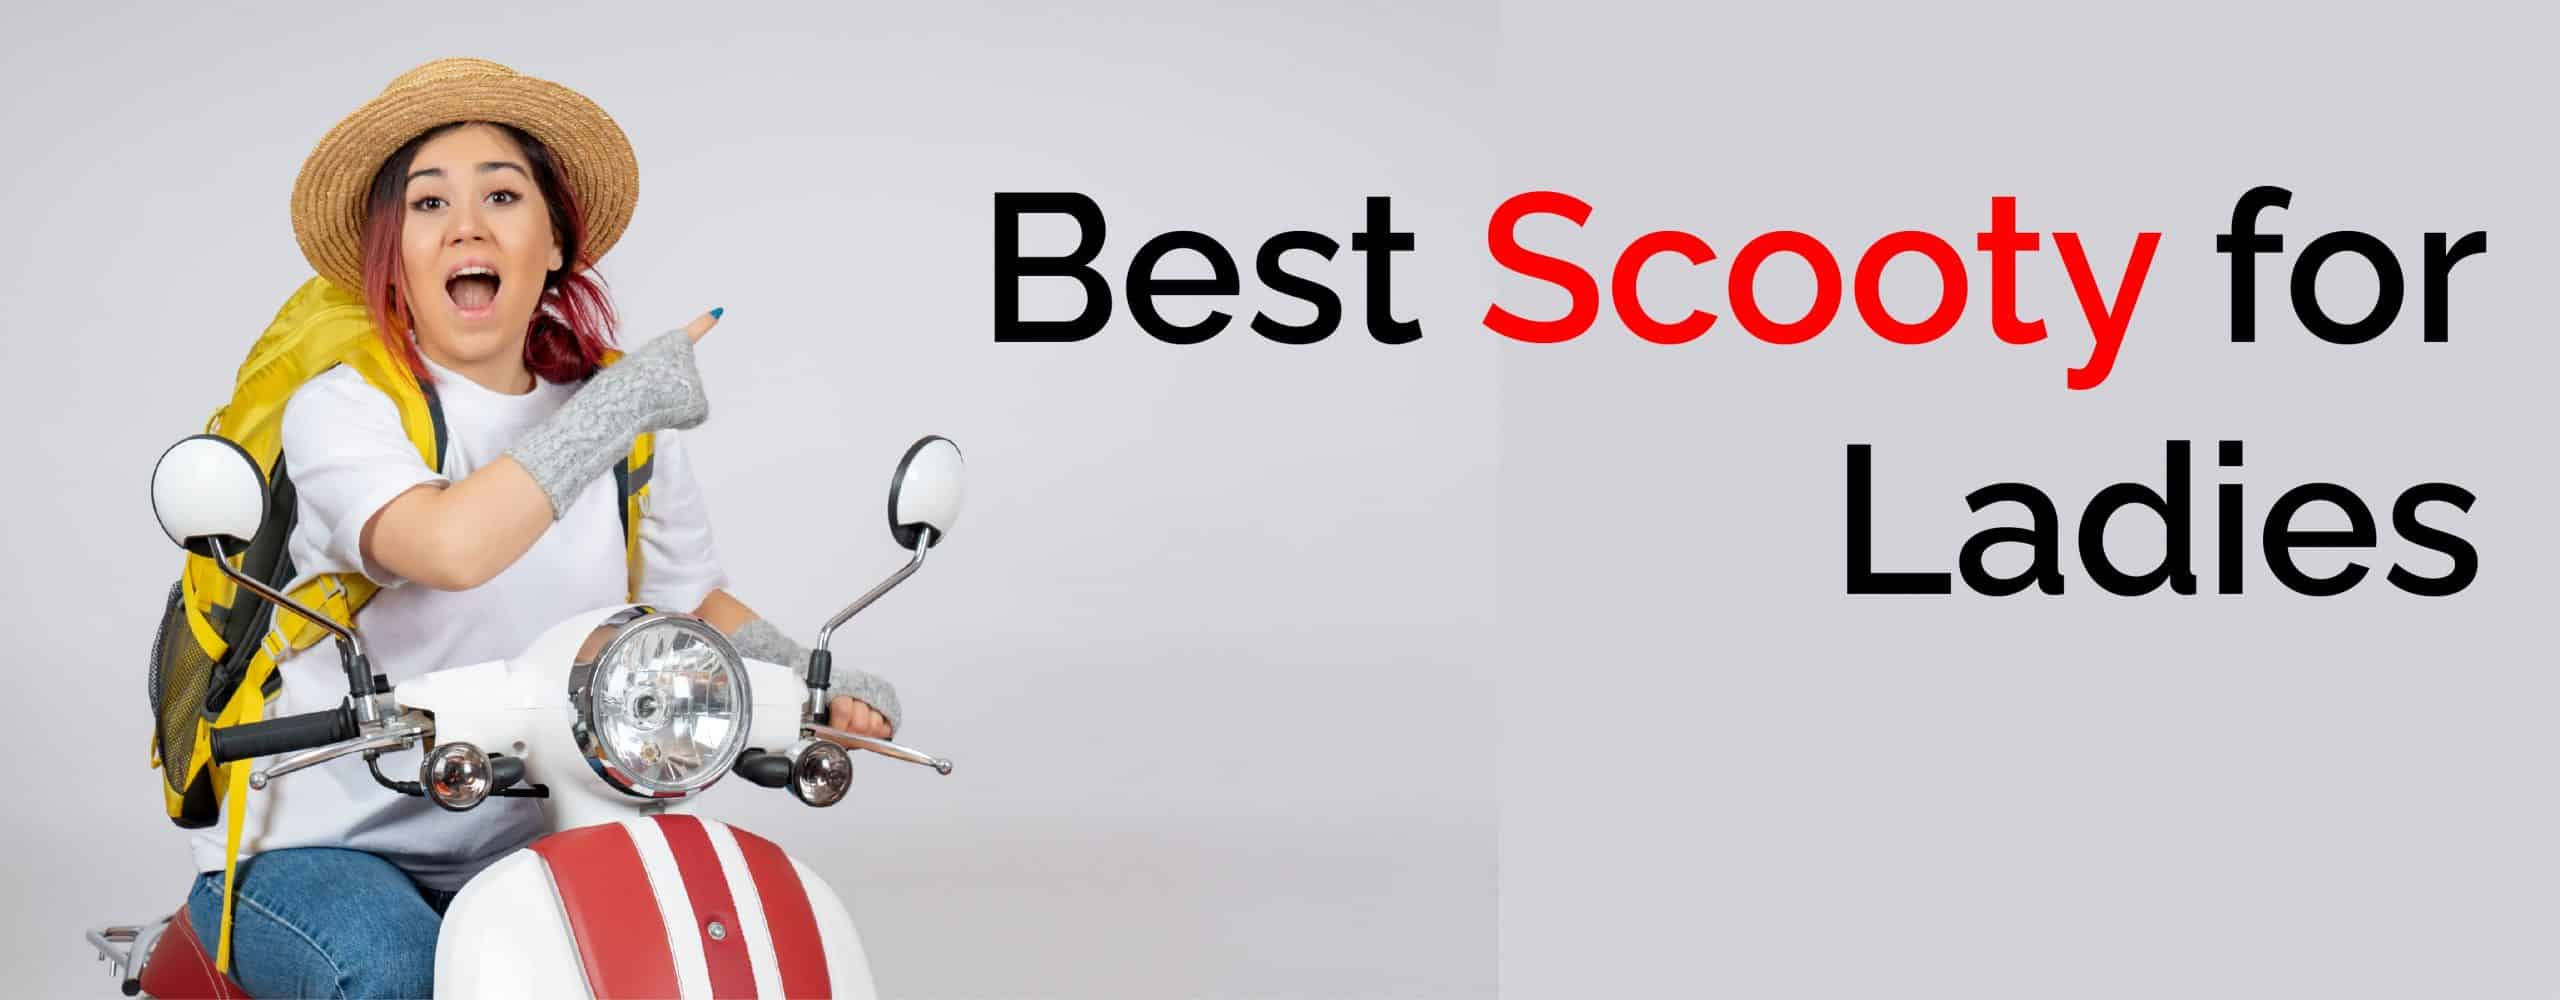 Best Scooty for Ladies